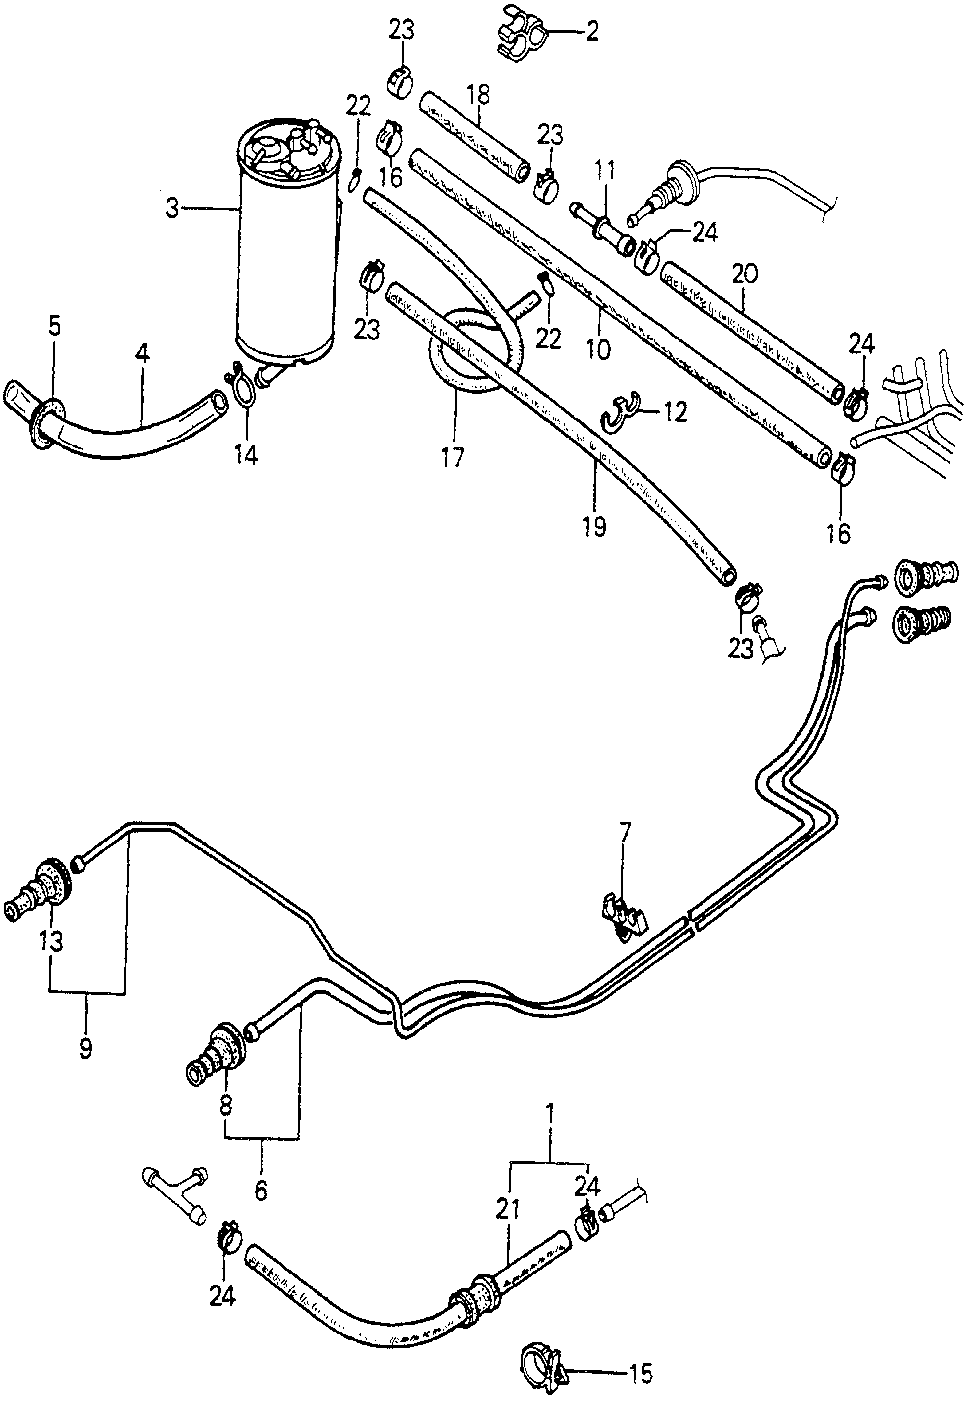 17706-692-003 - CLAMP, FUEL PIPE